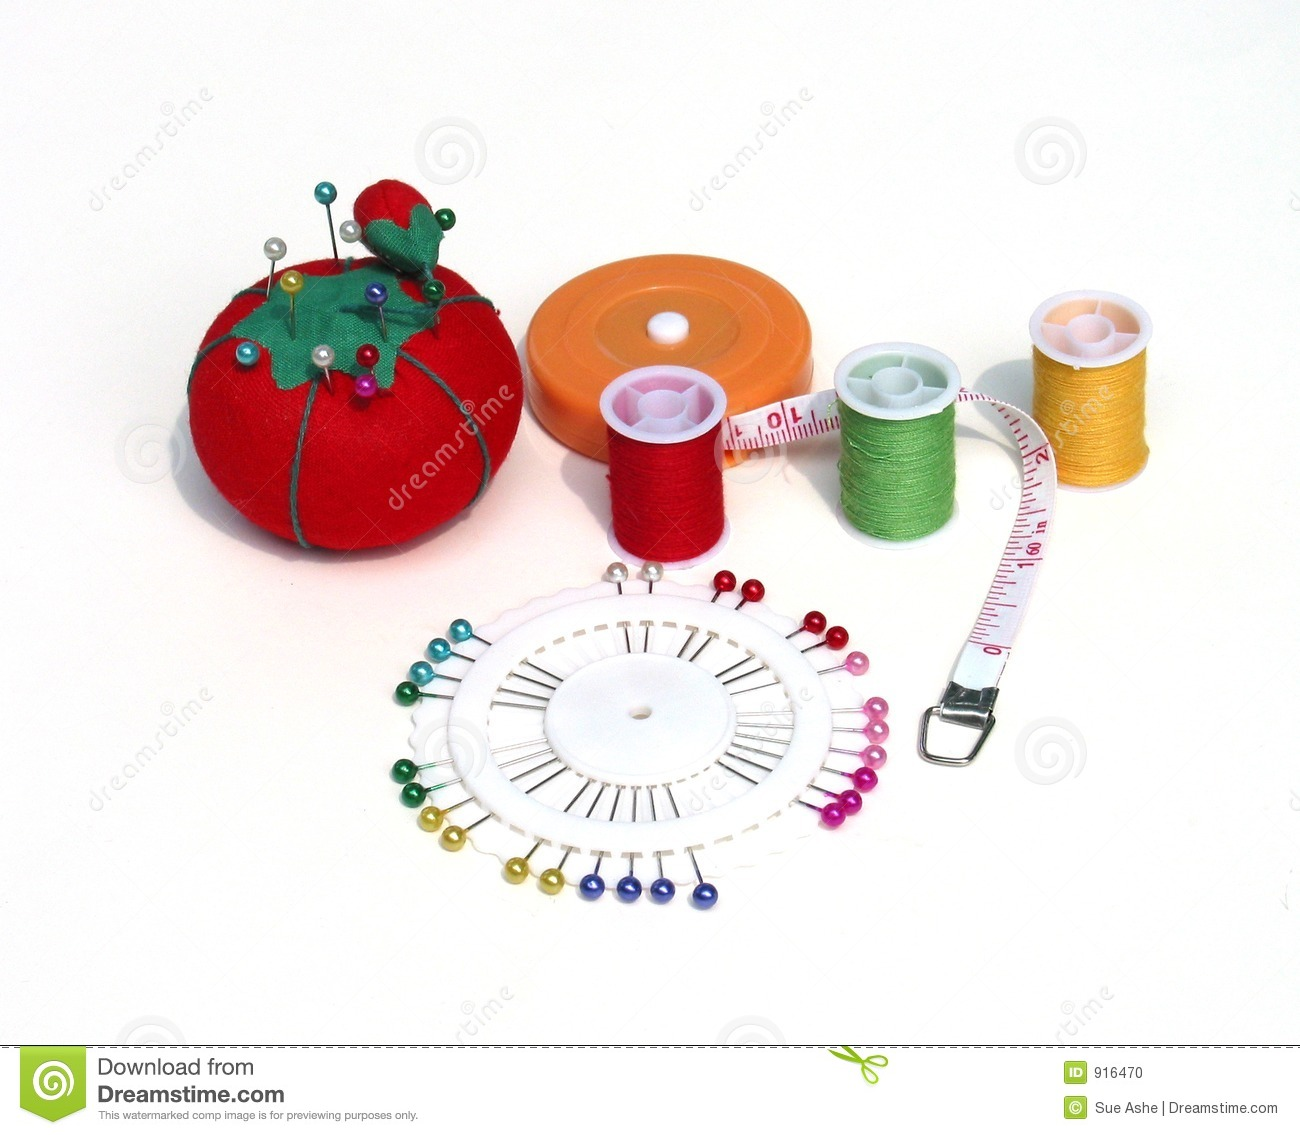 Sewing supplies notions sewing supplies for Sewing materials